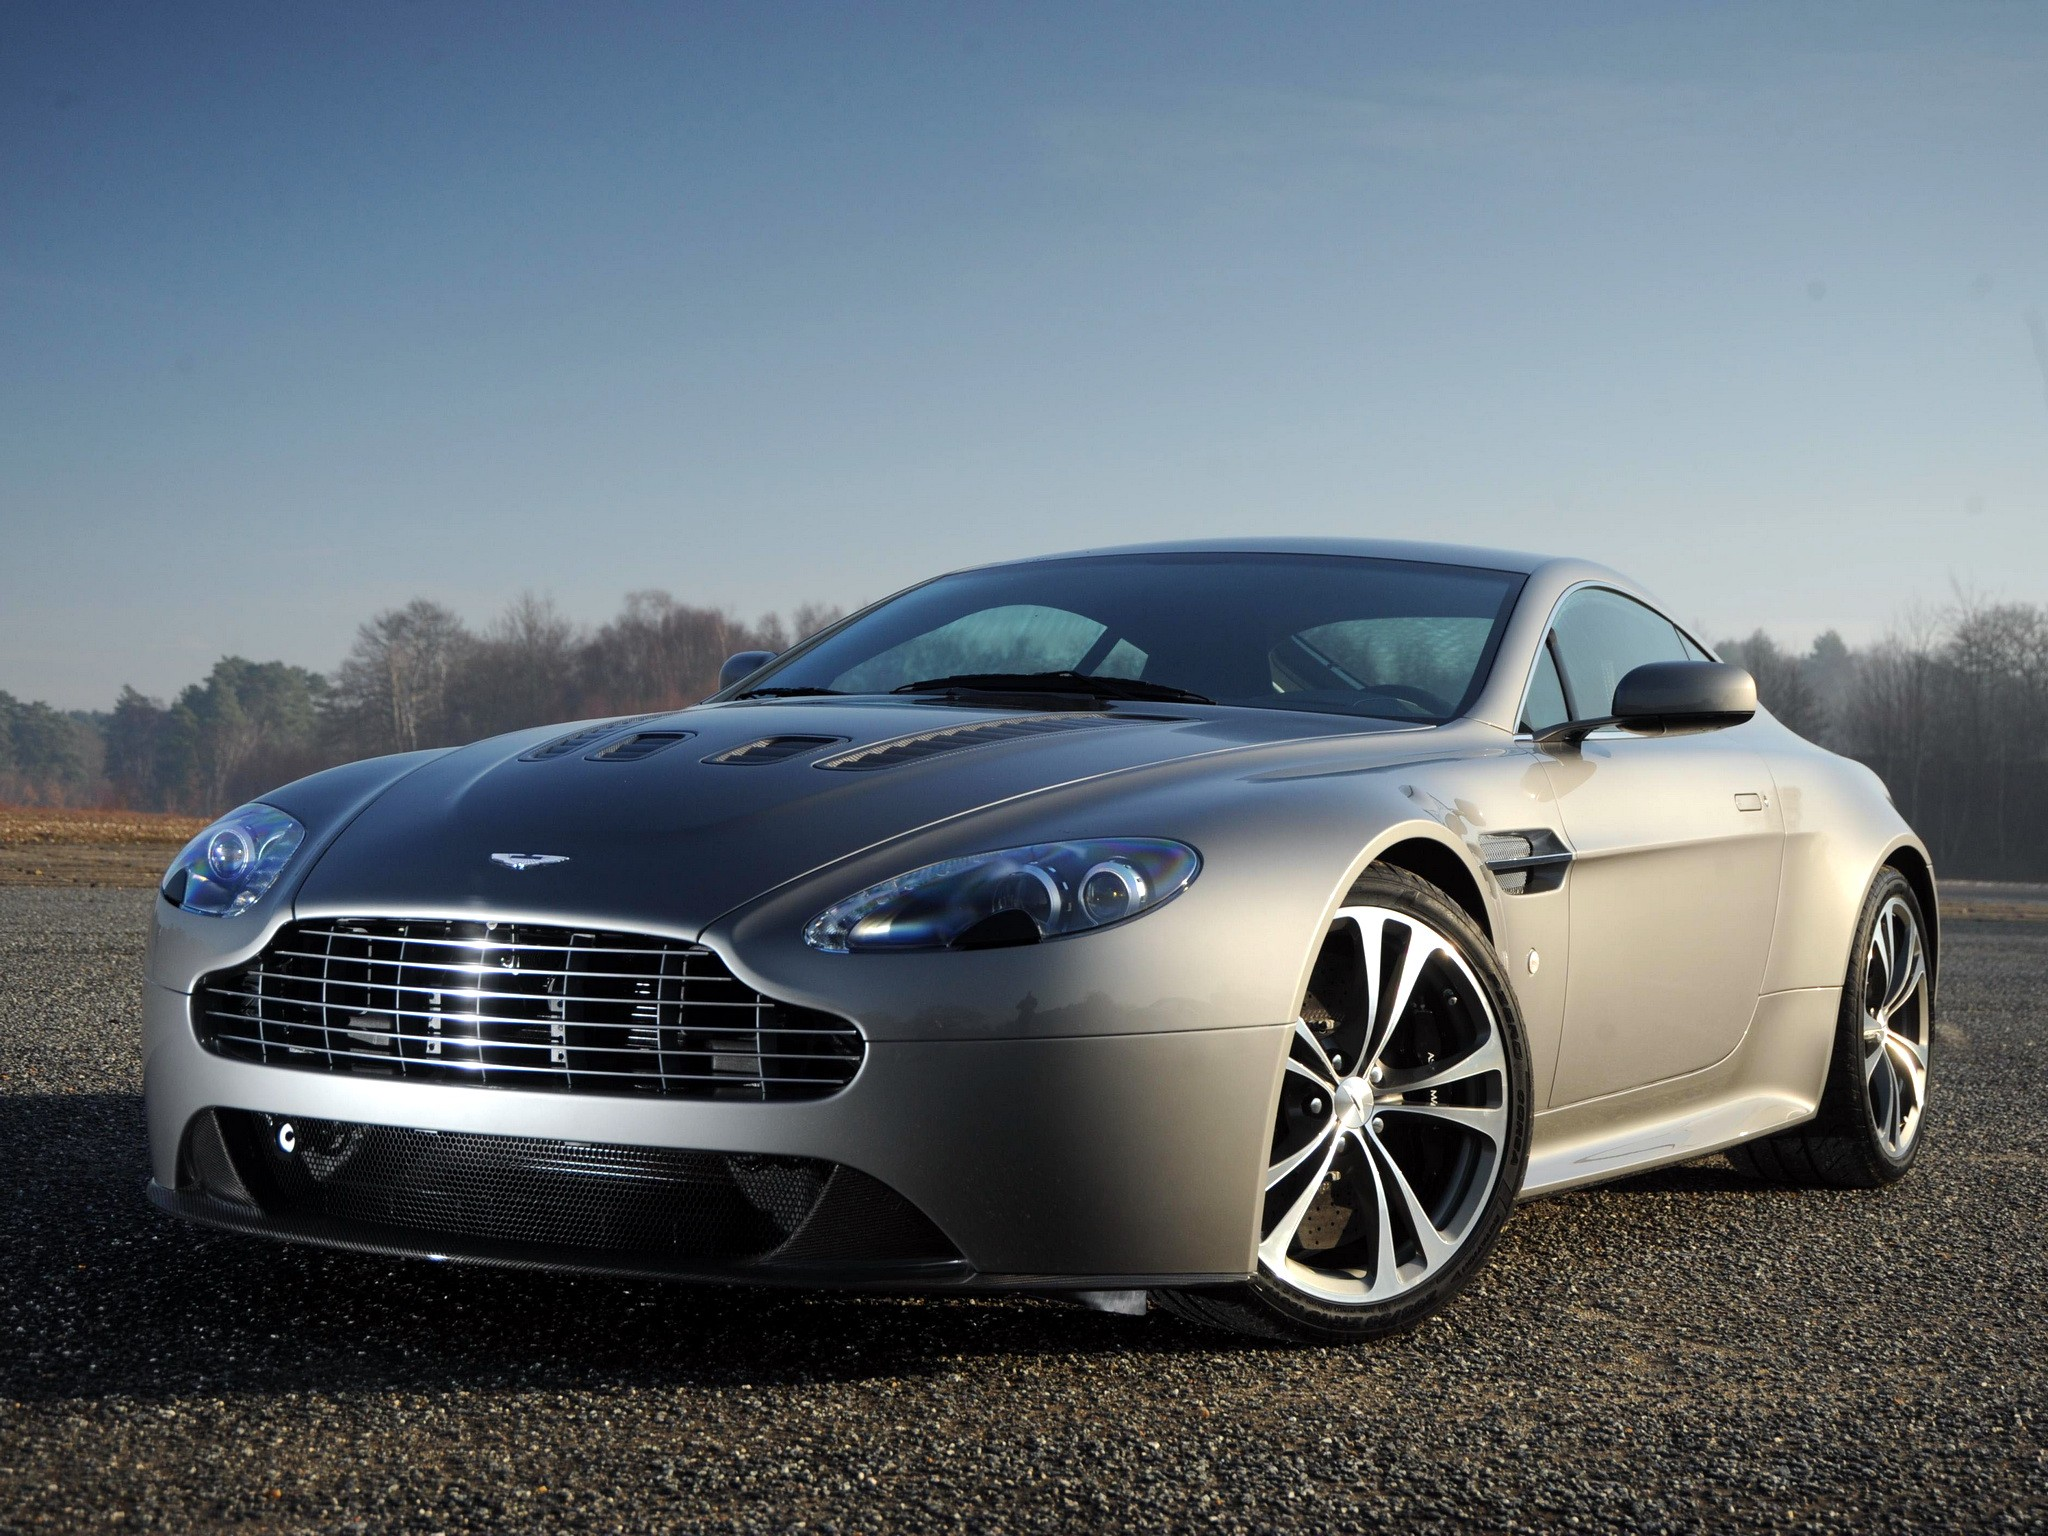 aston martin v12 vantage specs 2009 2010 2011 2012 2013 autoevolution. Black Bedroom Furniture Sets. Home Design Ideas